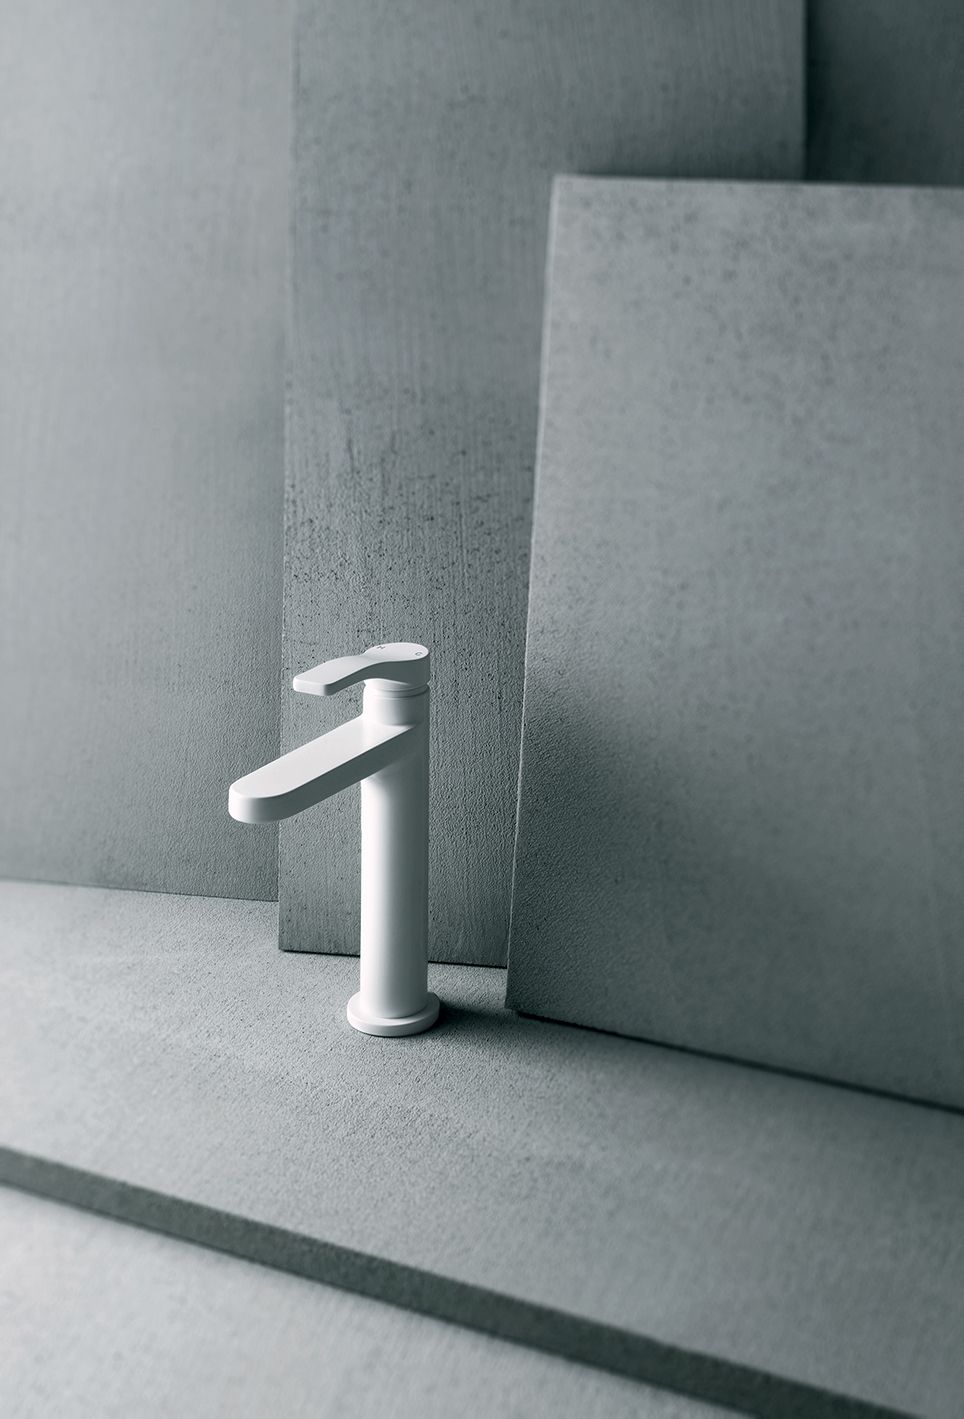 Accessori Bagno Fantini Piero Lissoni Fantini Rubinetti White Finish Faucet Design